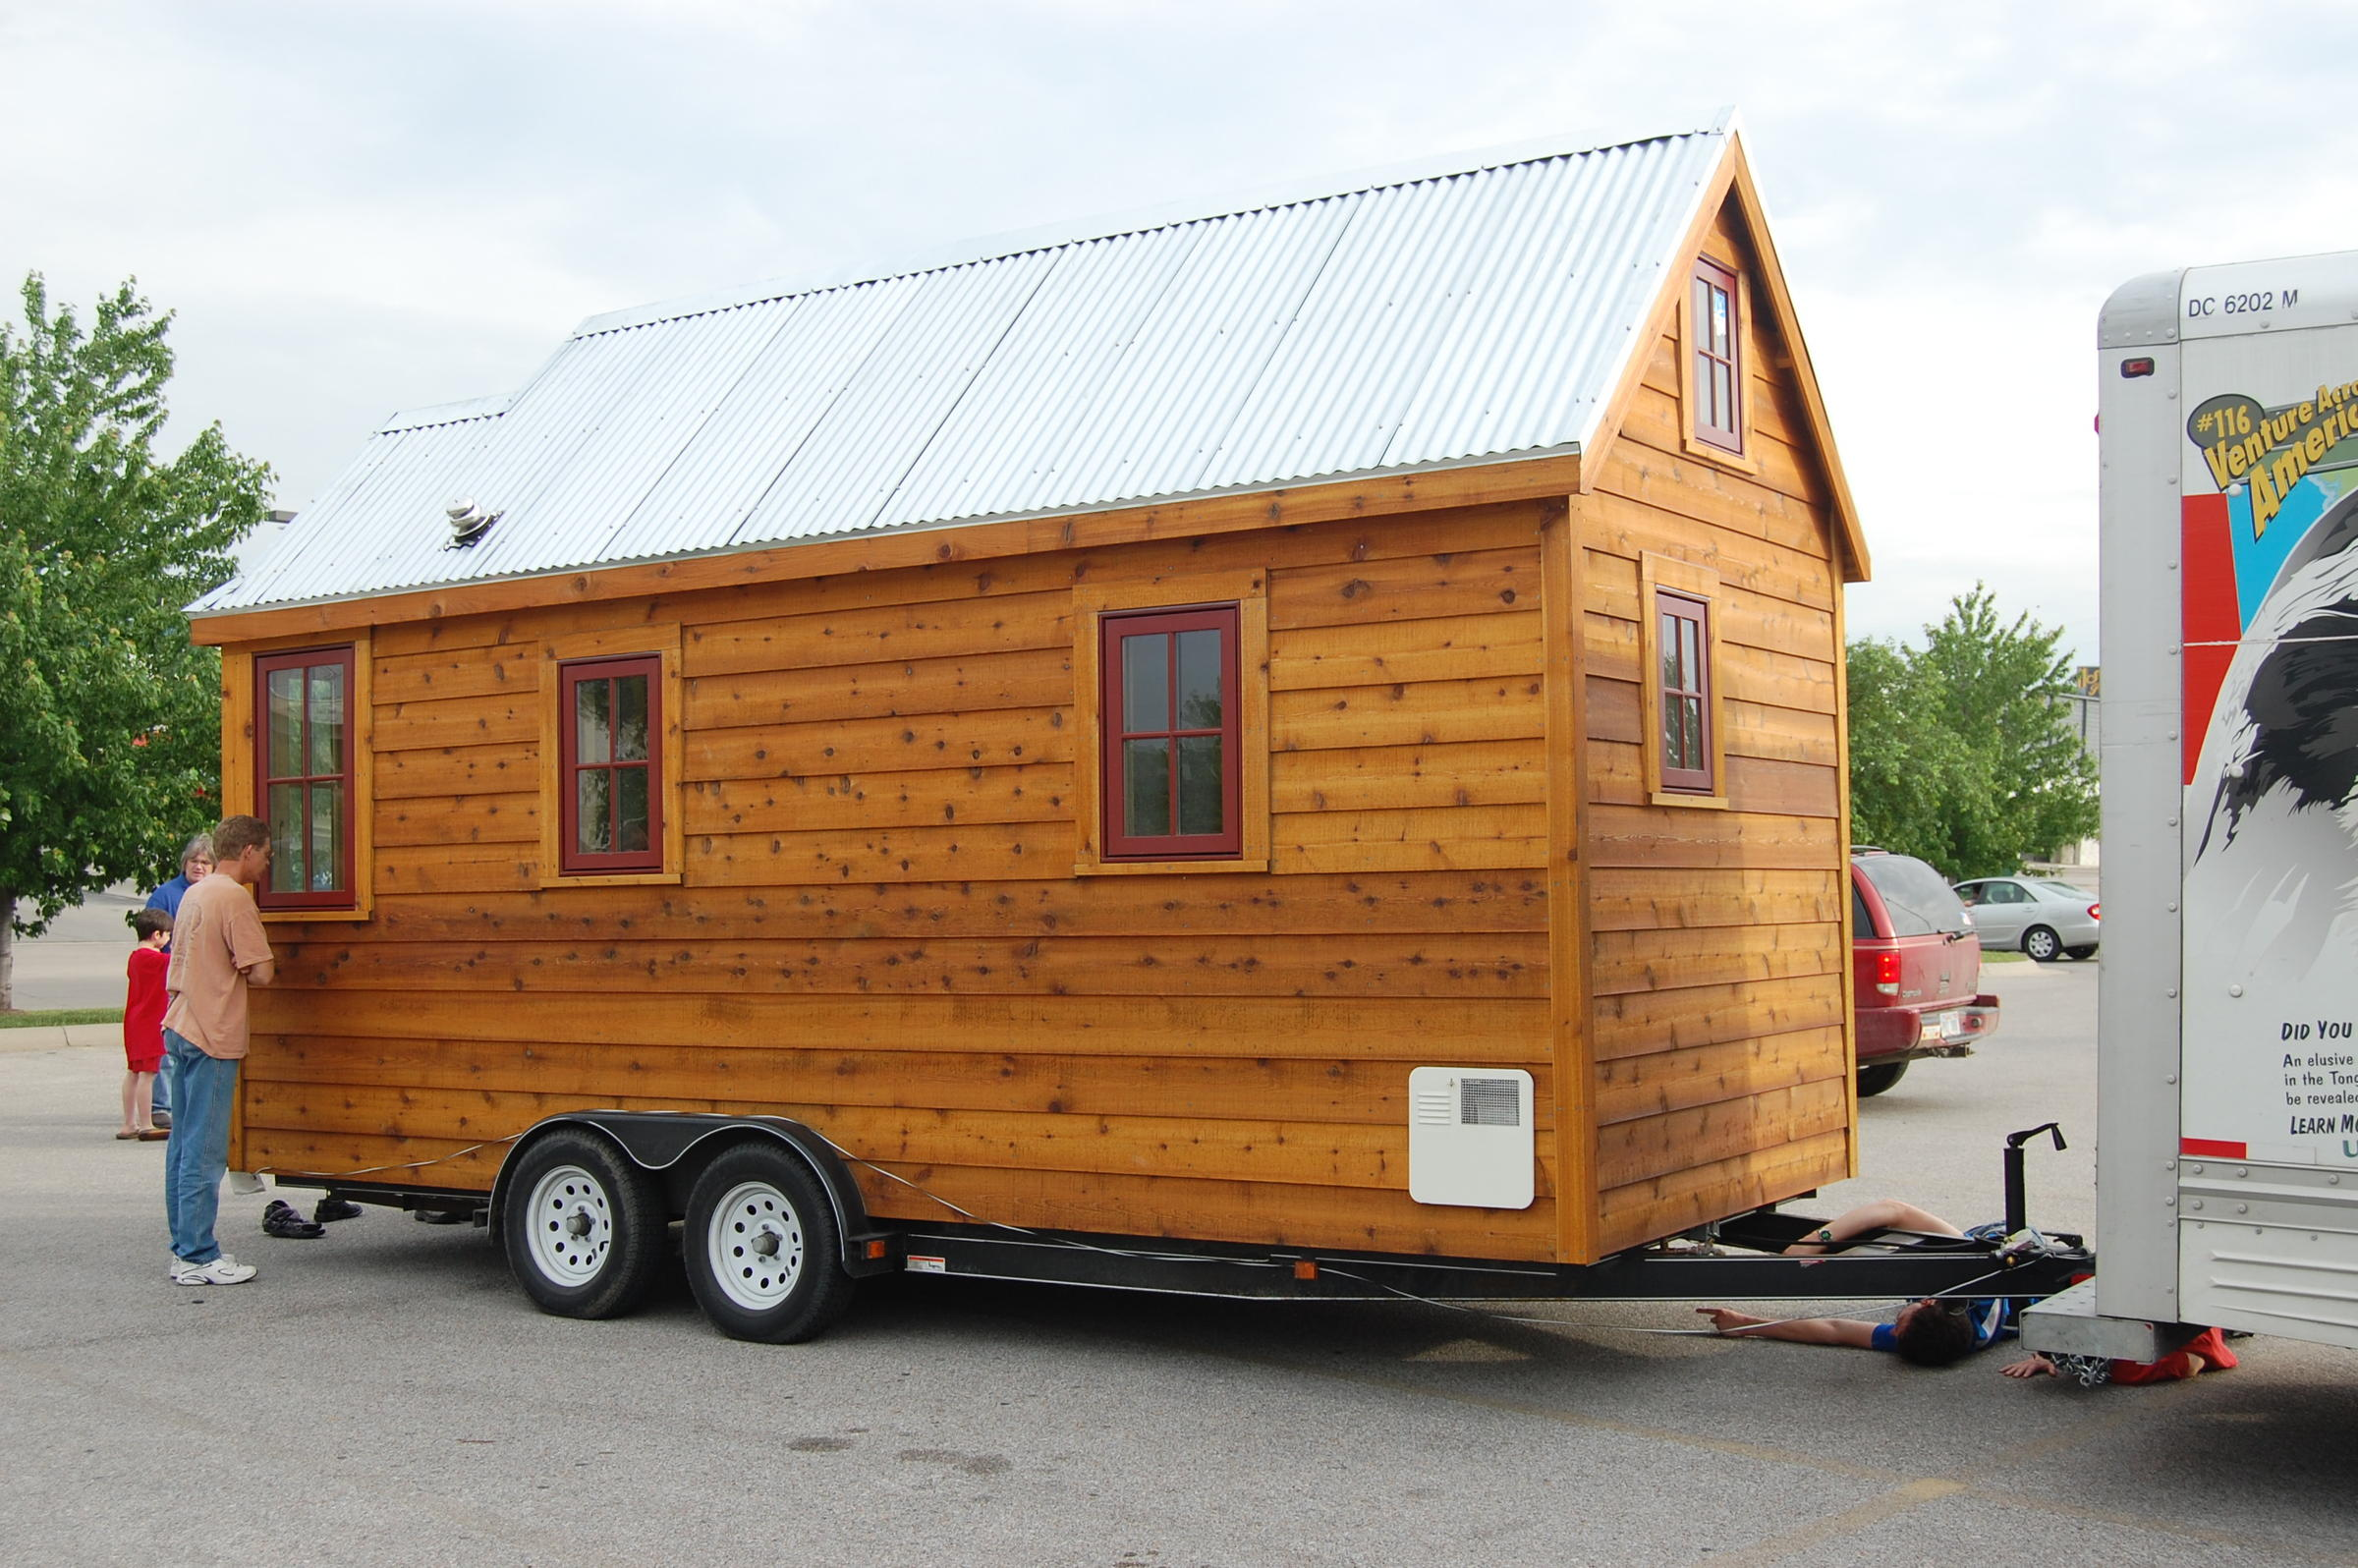 Tiny House Movement Gaining Traction In Metro Atlanta WABE 901 FM